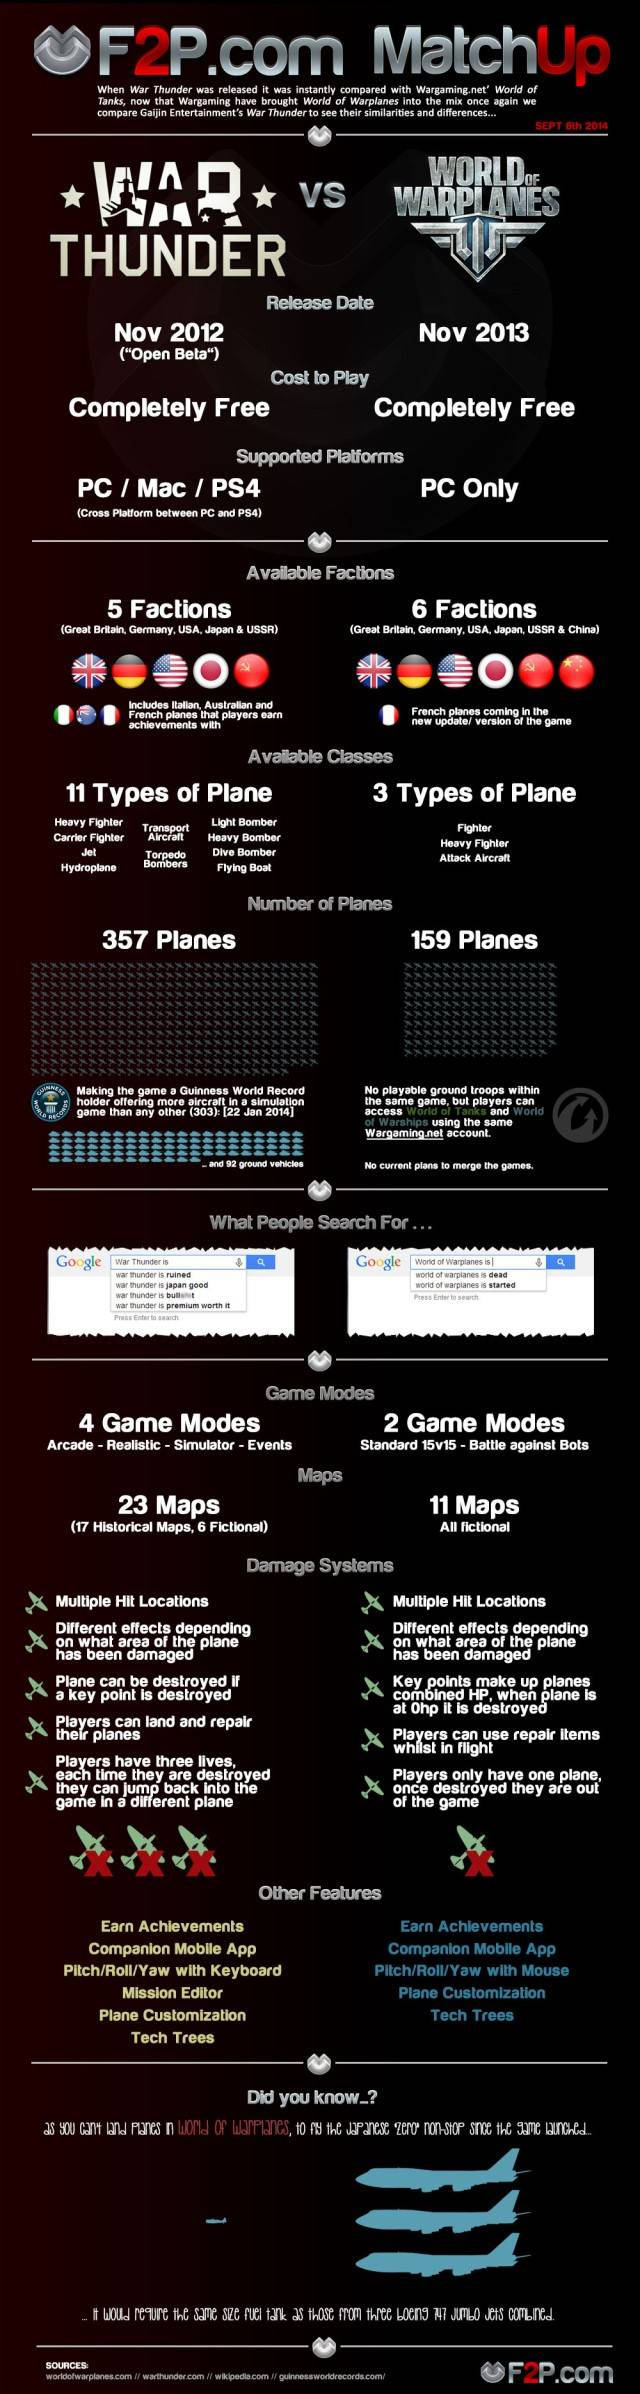 War Thunder v WoP - Infographic 640